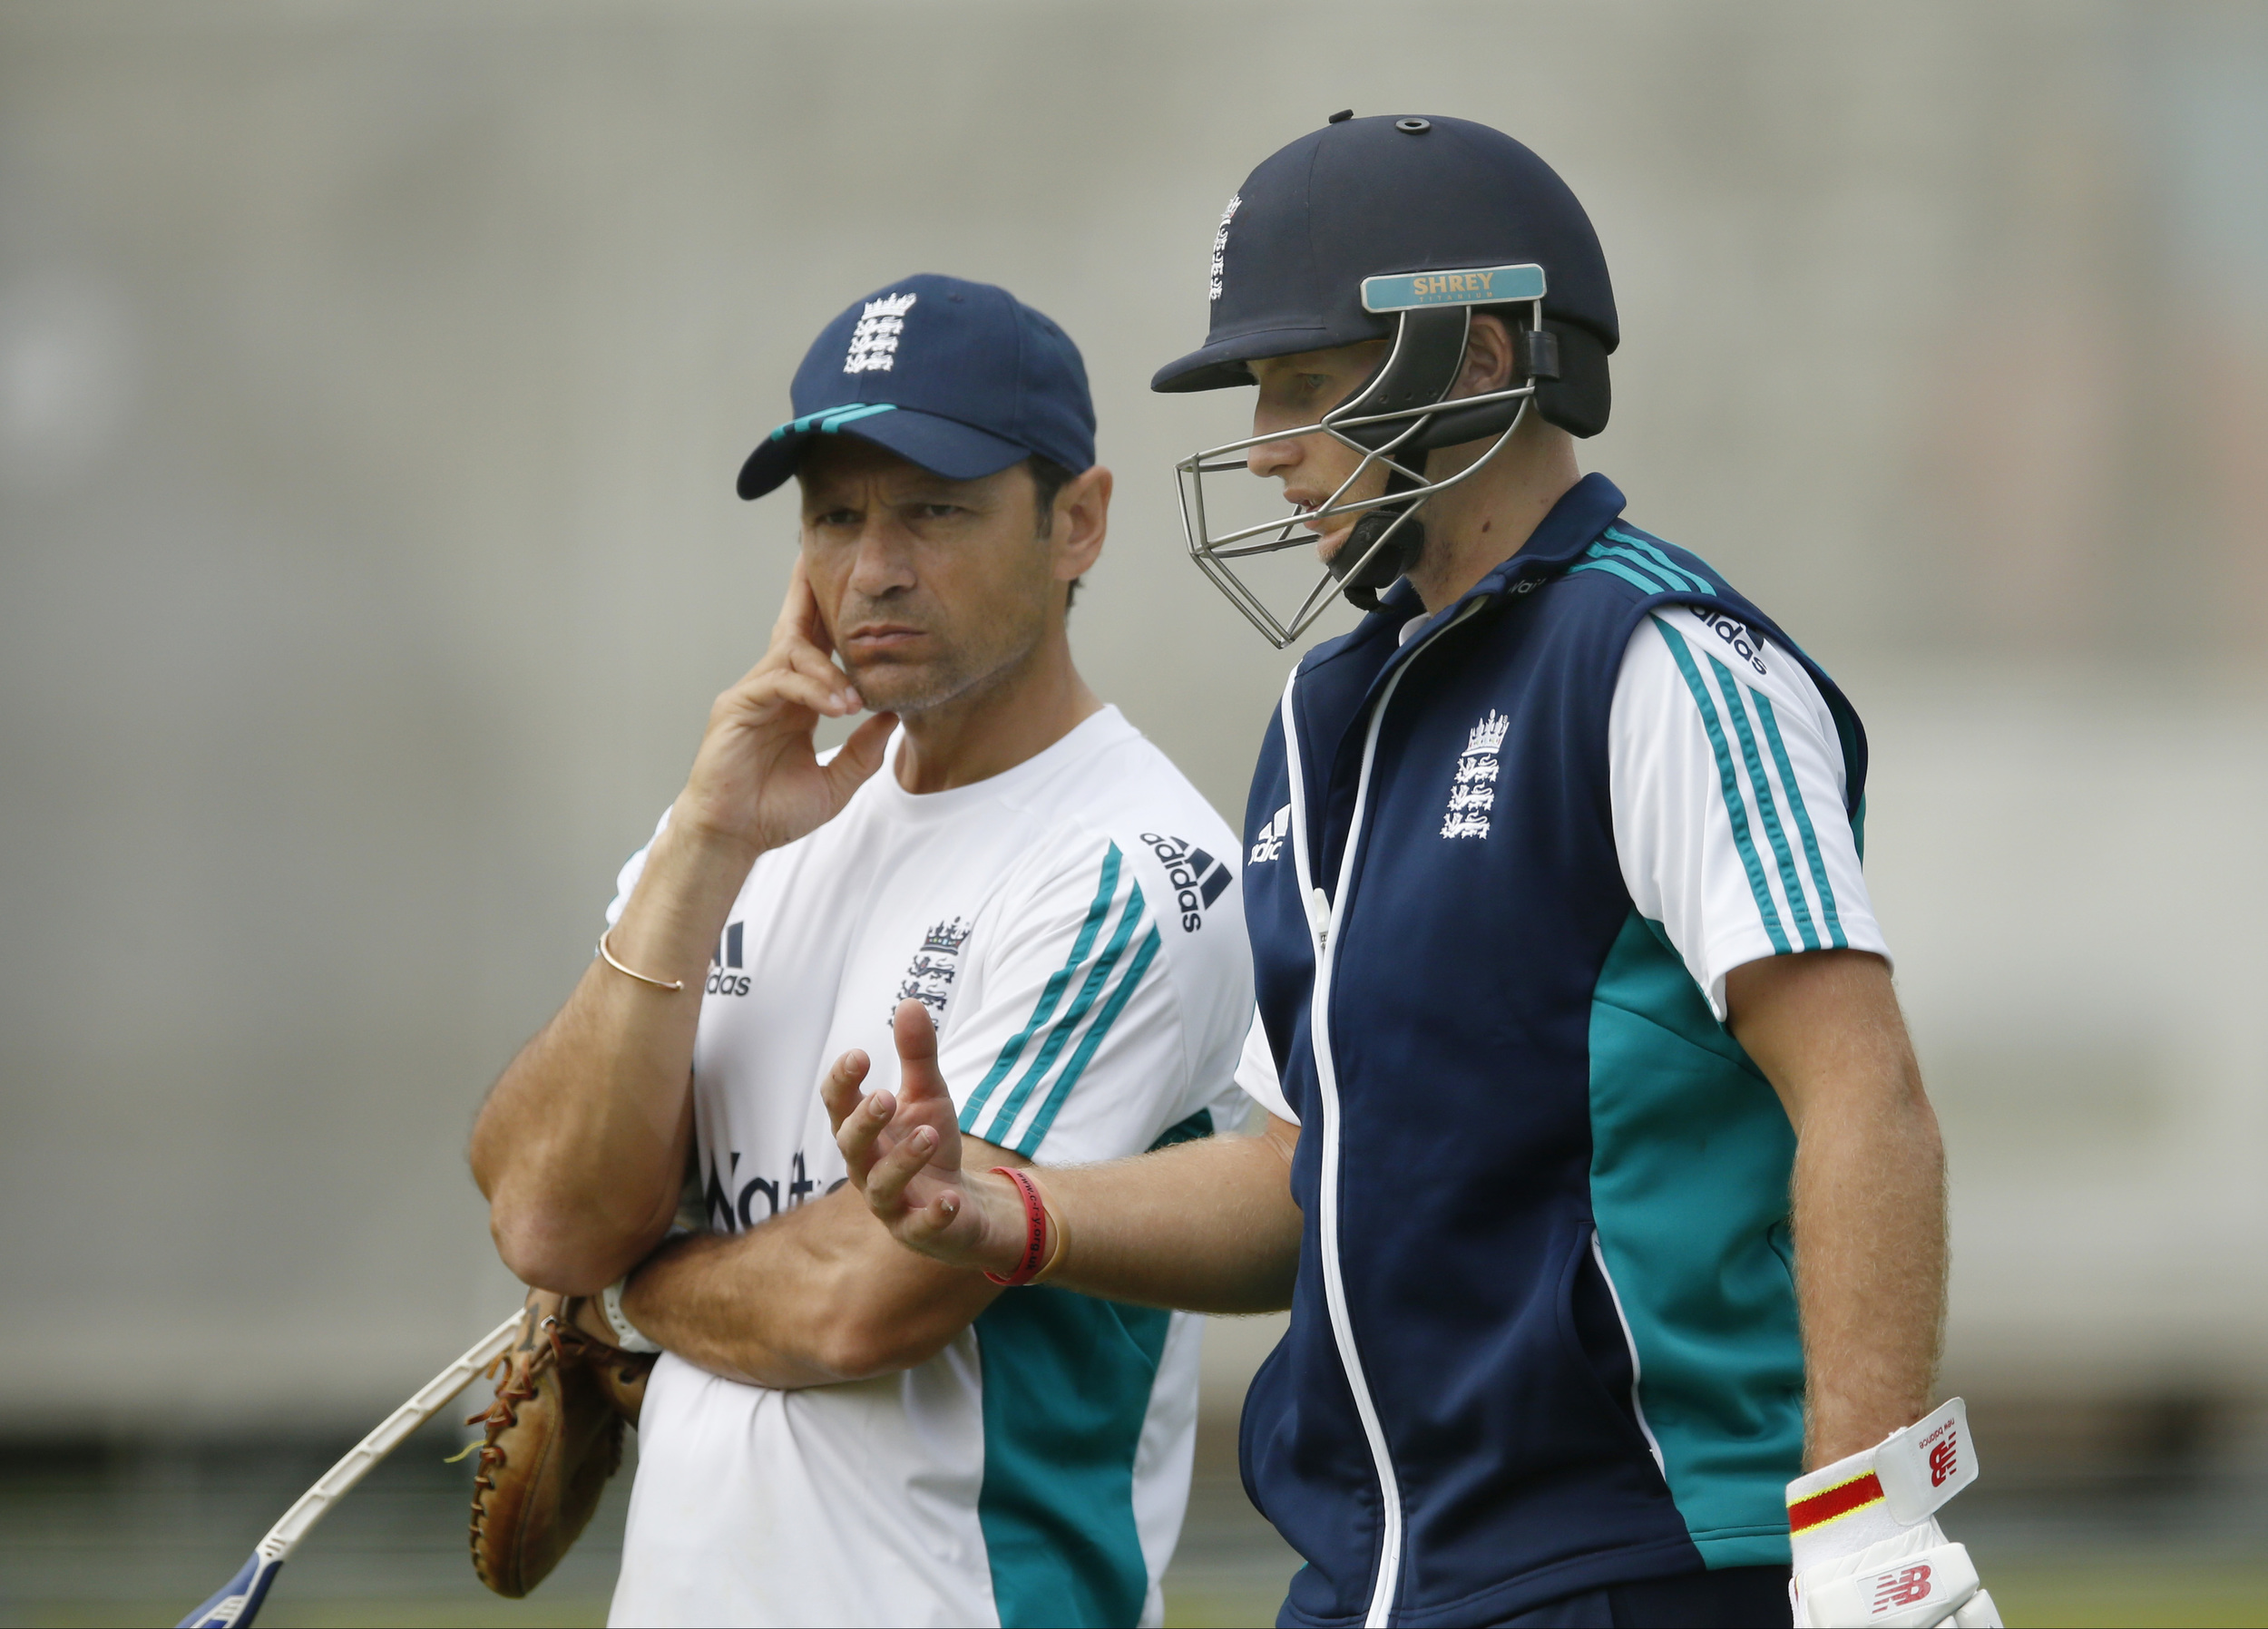 England's Joe Root (R) with batting coach Mark Ramprakash during a training session in preparation for the Test series between England and Pakistan. By asking questions, and challenging Root to find the answers himself, Ramprakash has unlocked England's best batsman's true potential. Image supplied by Action Images /Andrew Boyers.